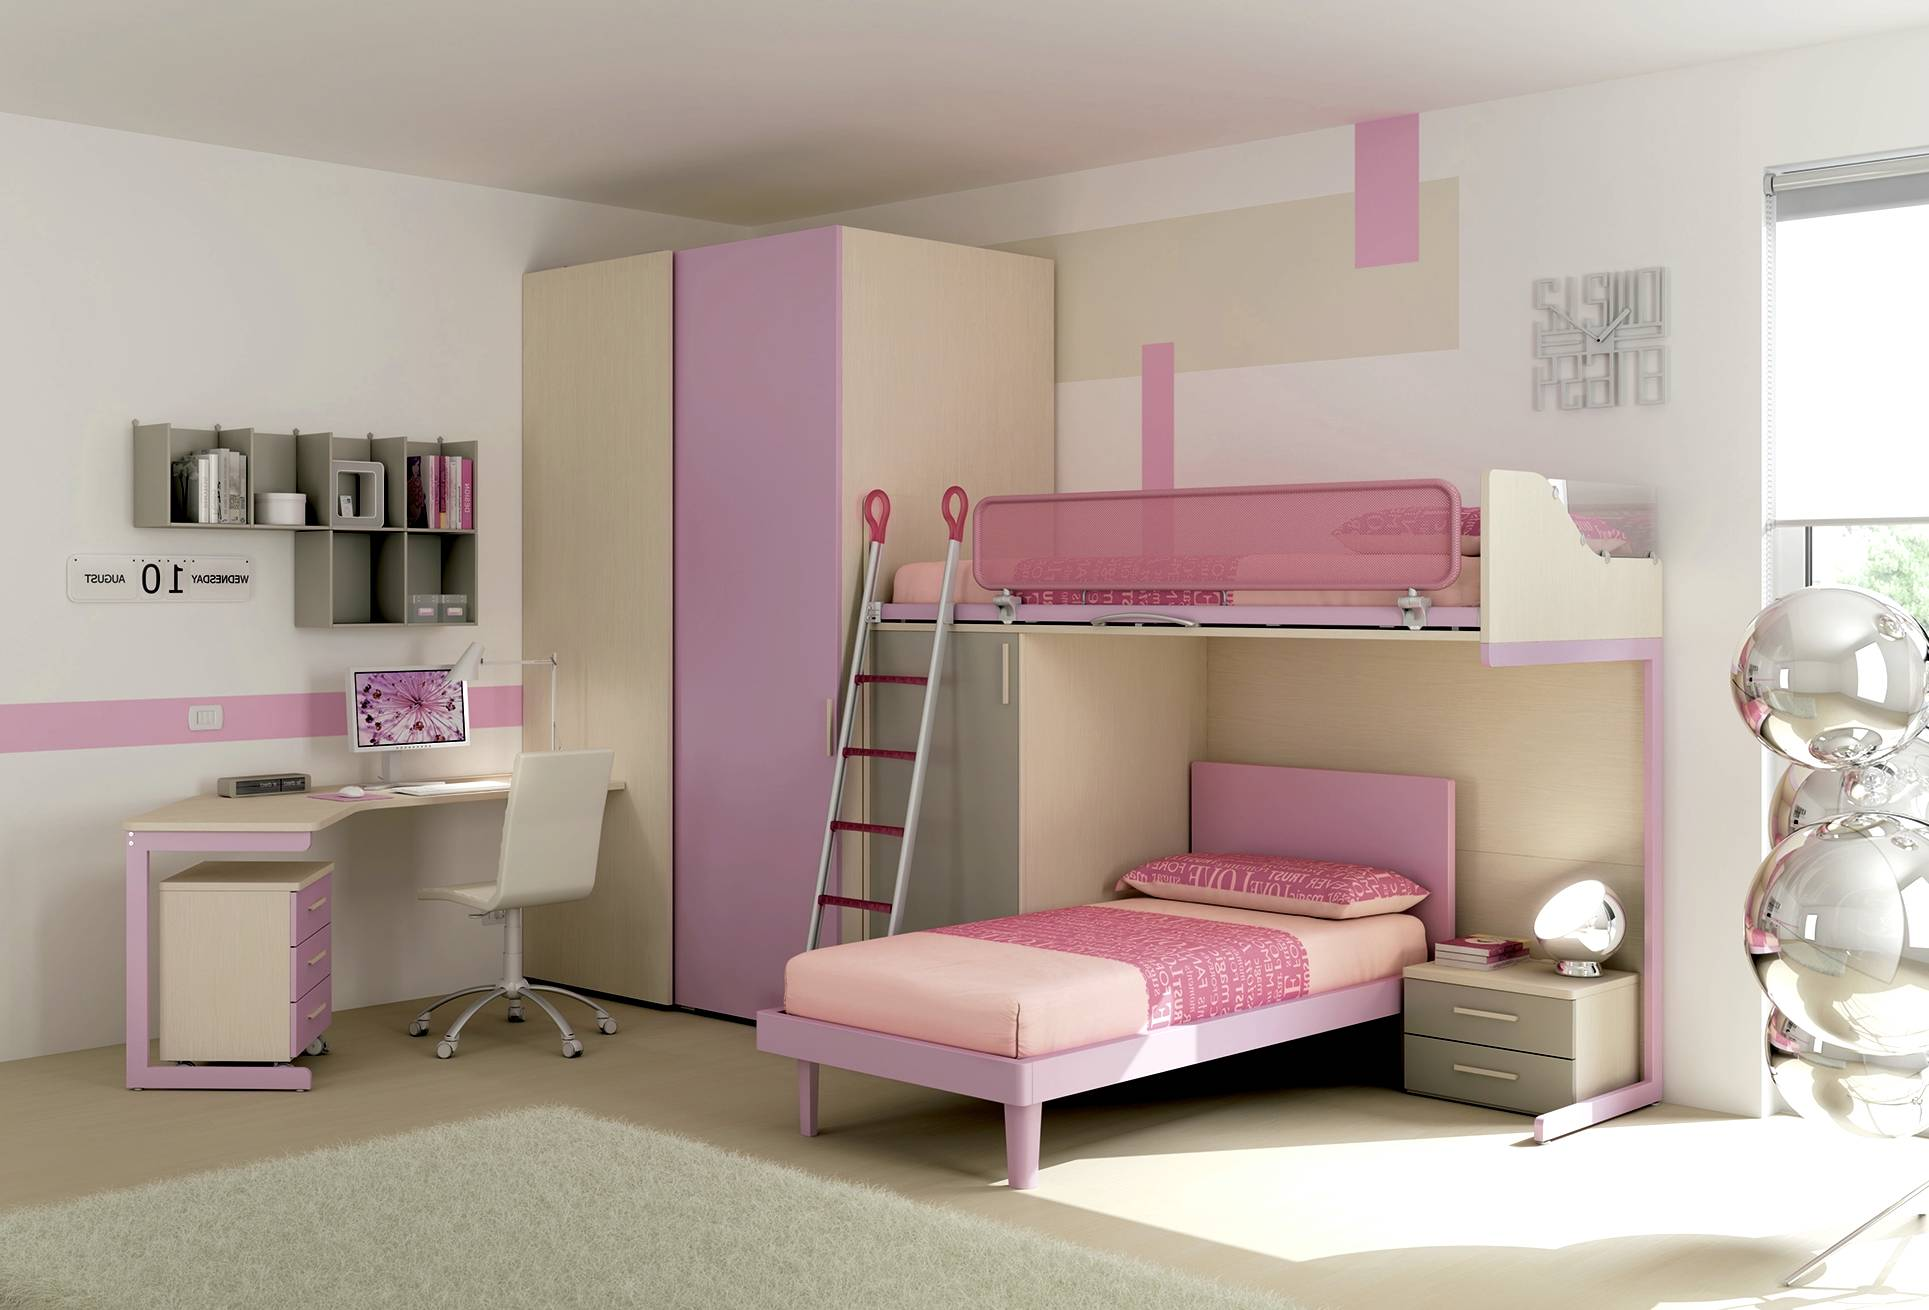 id es de d co pour une chambre d 39 enfant habitat magazine. Black Bedroom Furniture Sets. Home Design Ideas